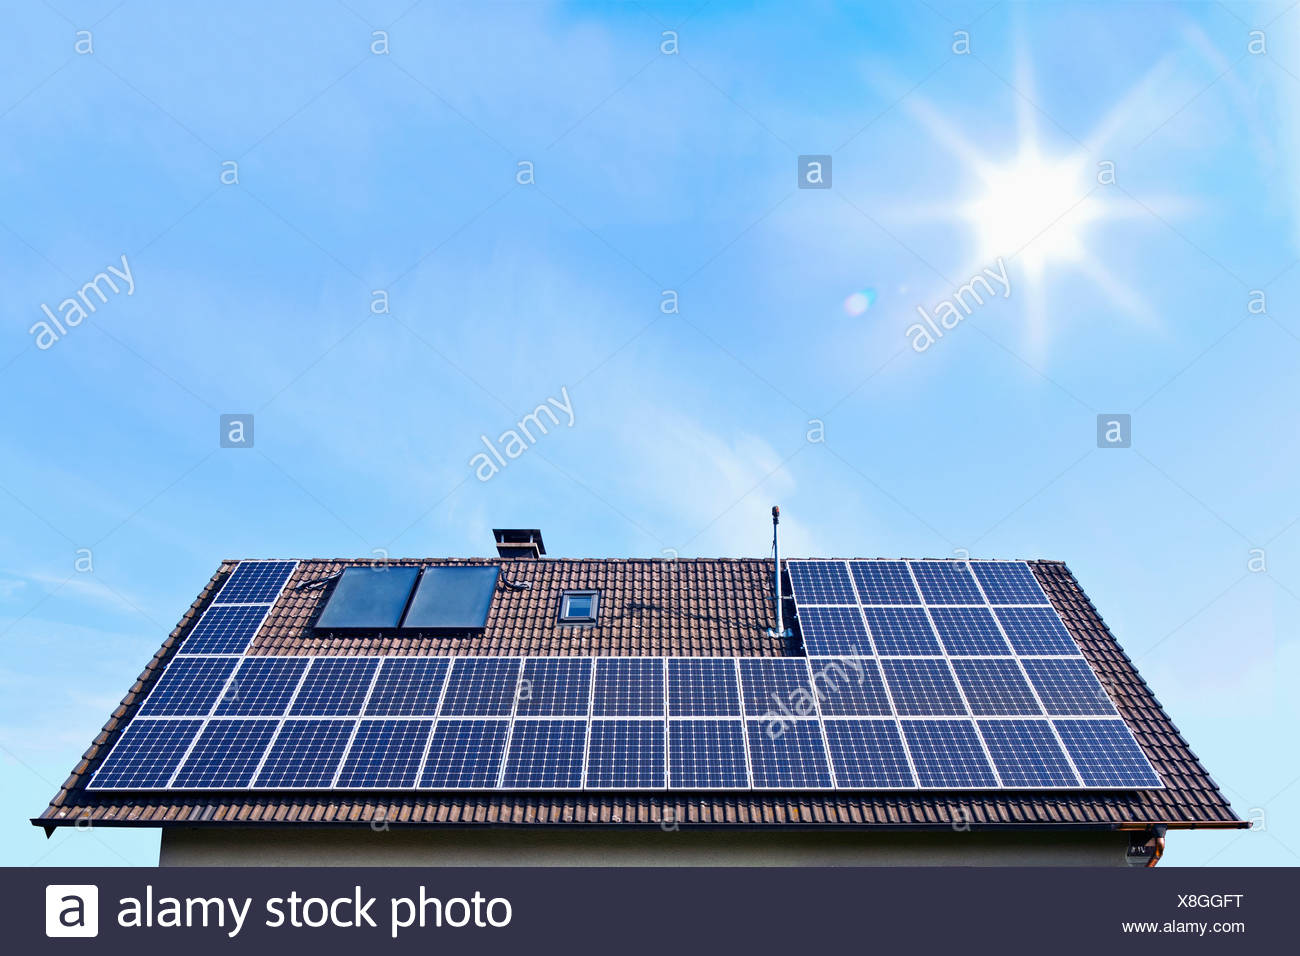 Germany, Solar panels on houseroof in front of blue sky with sun - Stock Image